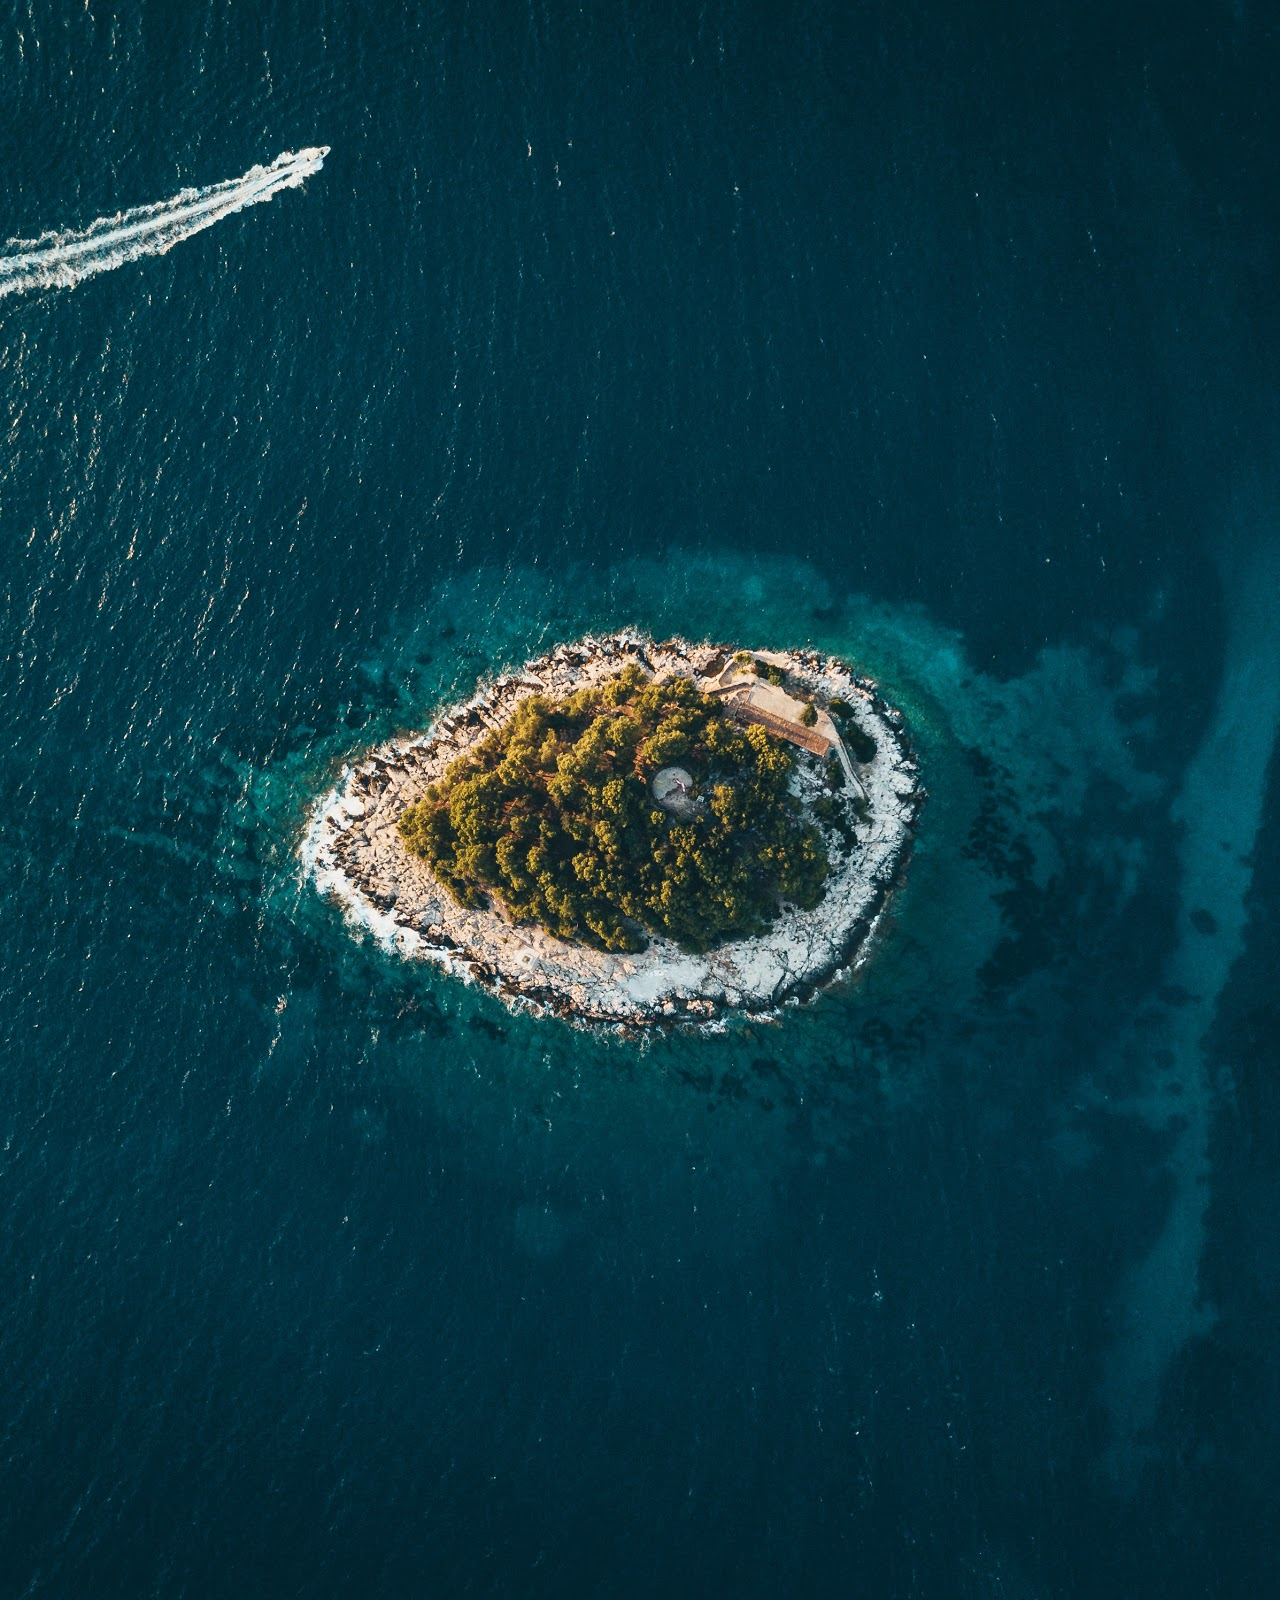 A beautiful island rich with foliage and surrounded by a white shingle sits in the midst of a sparkling azure sea. Toward the top of the frame, a speedboat is passing.